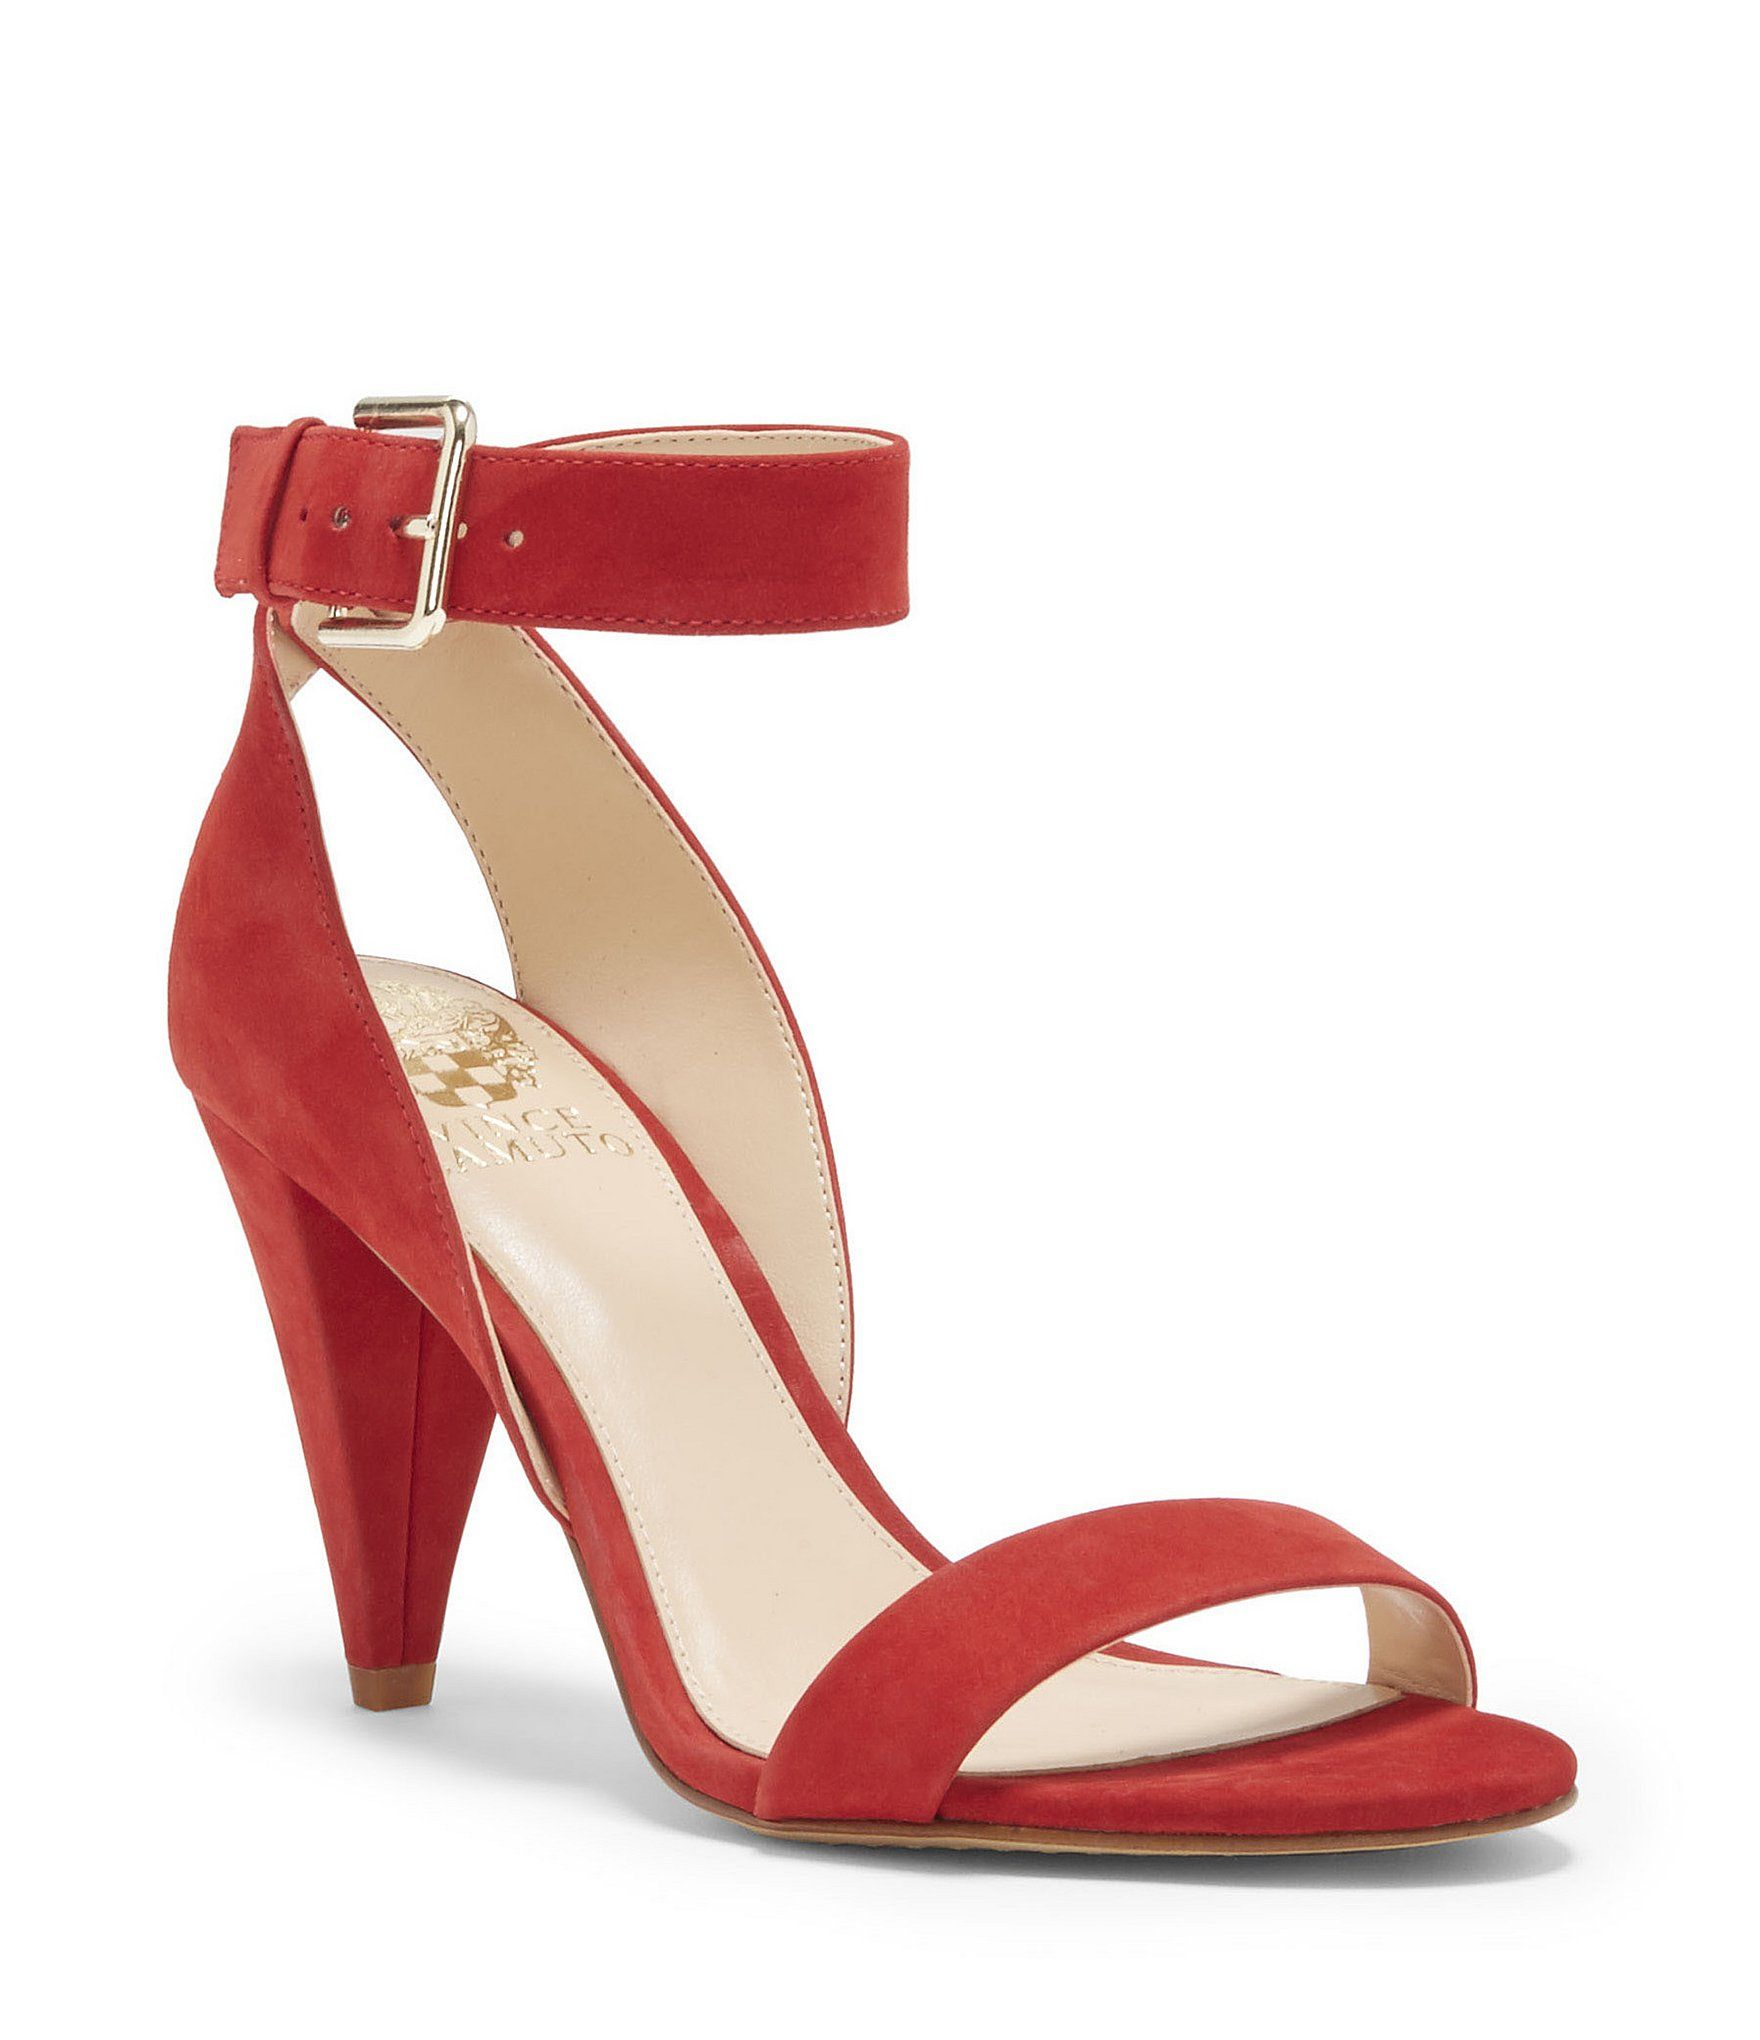 Shop For Vince Camuto Caitriona Suede Nubuck Buckle Ankle